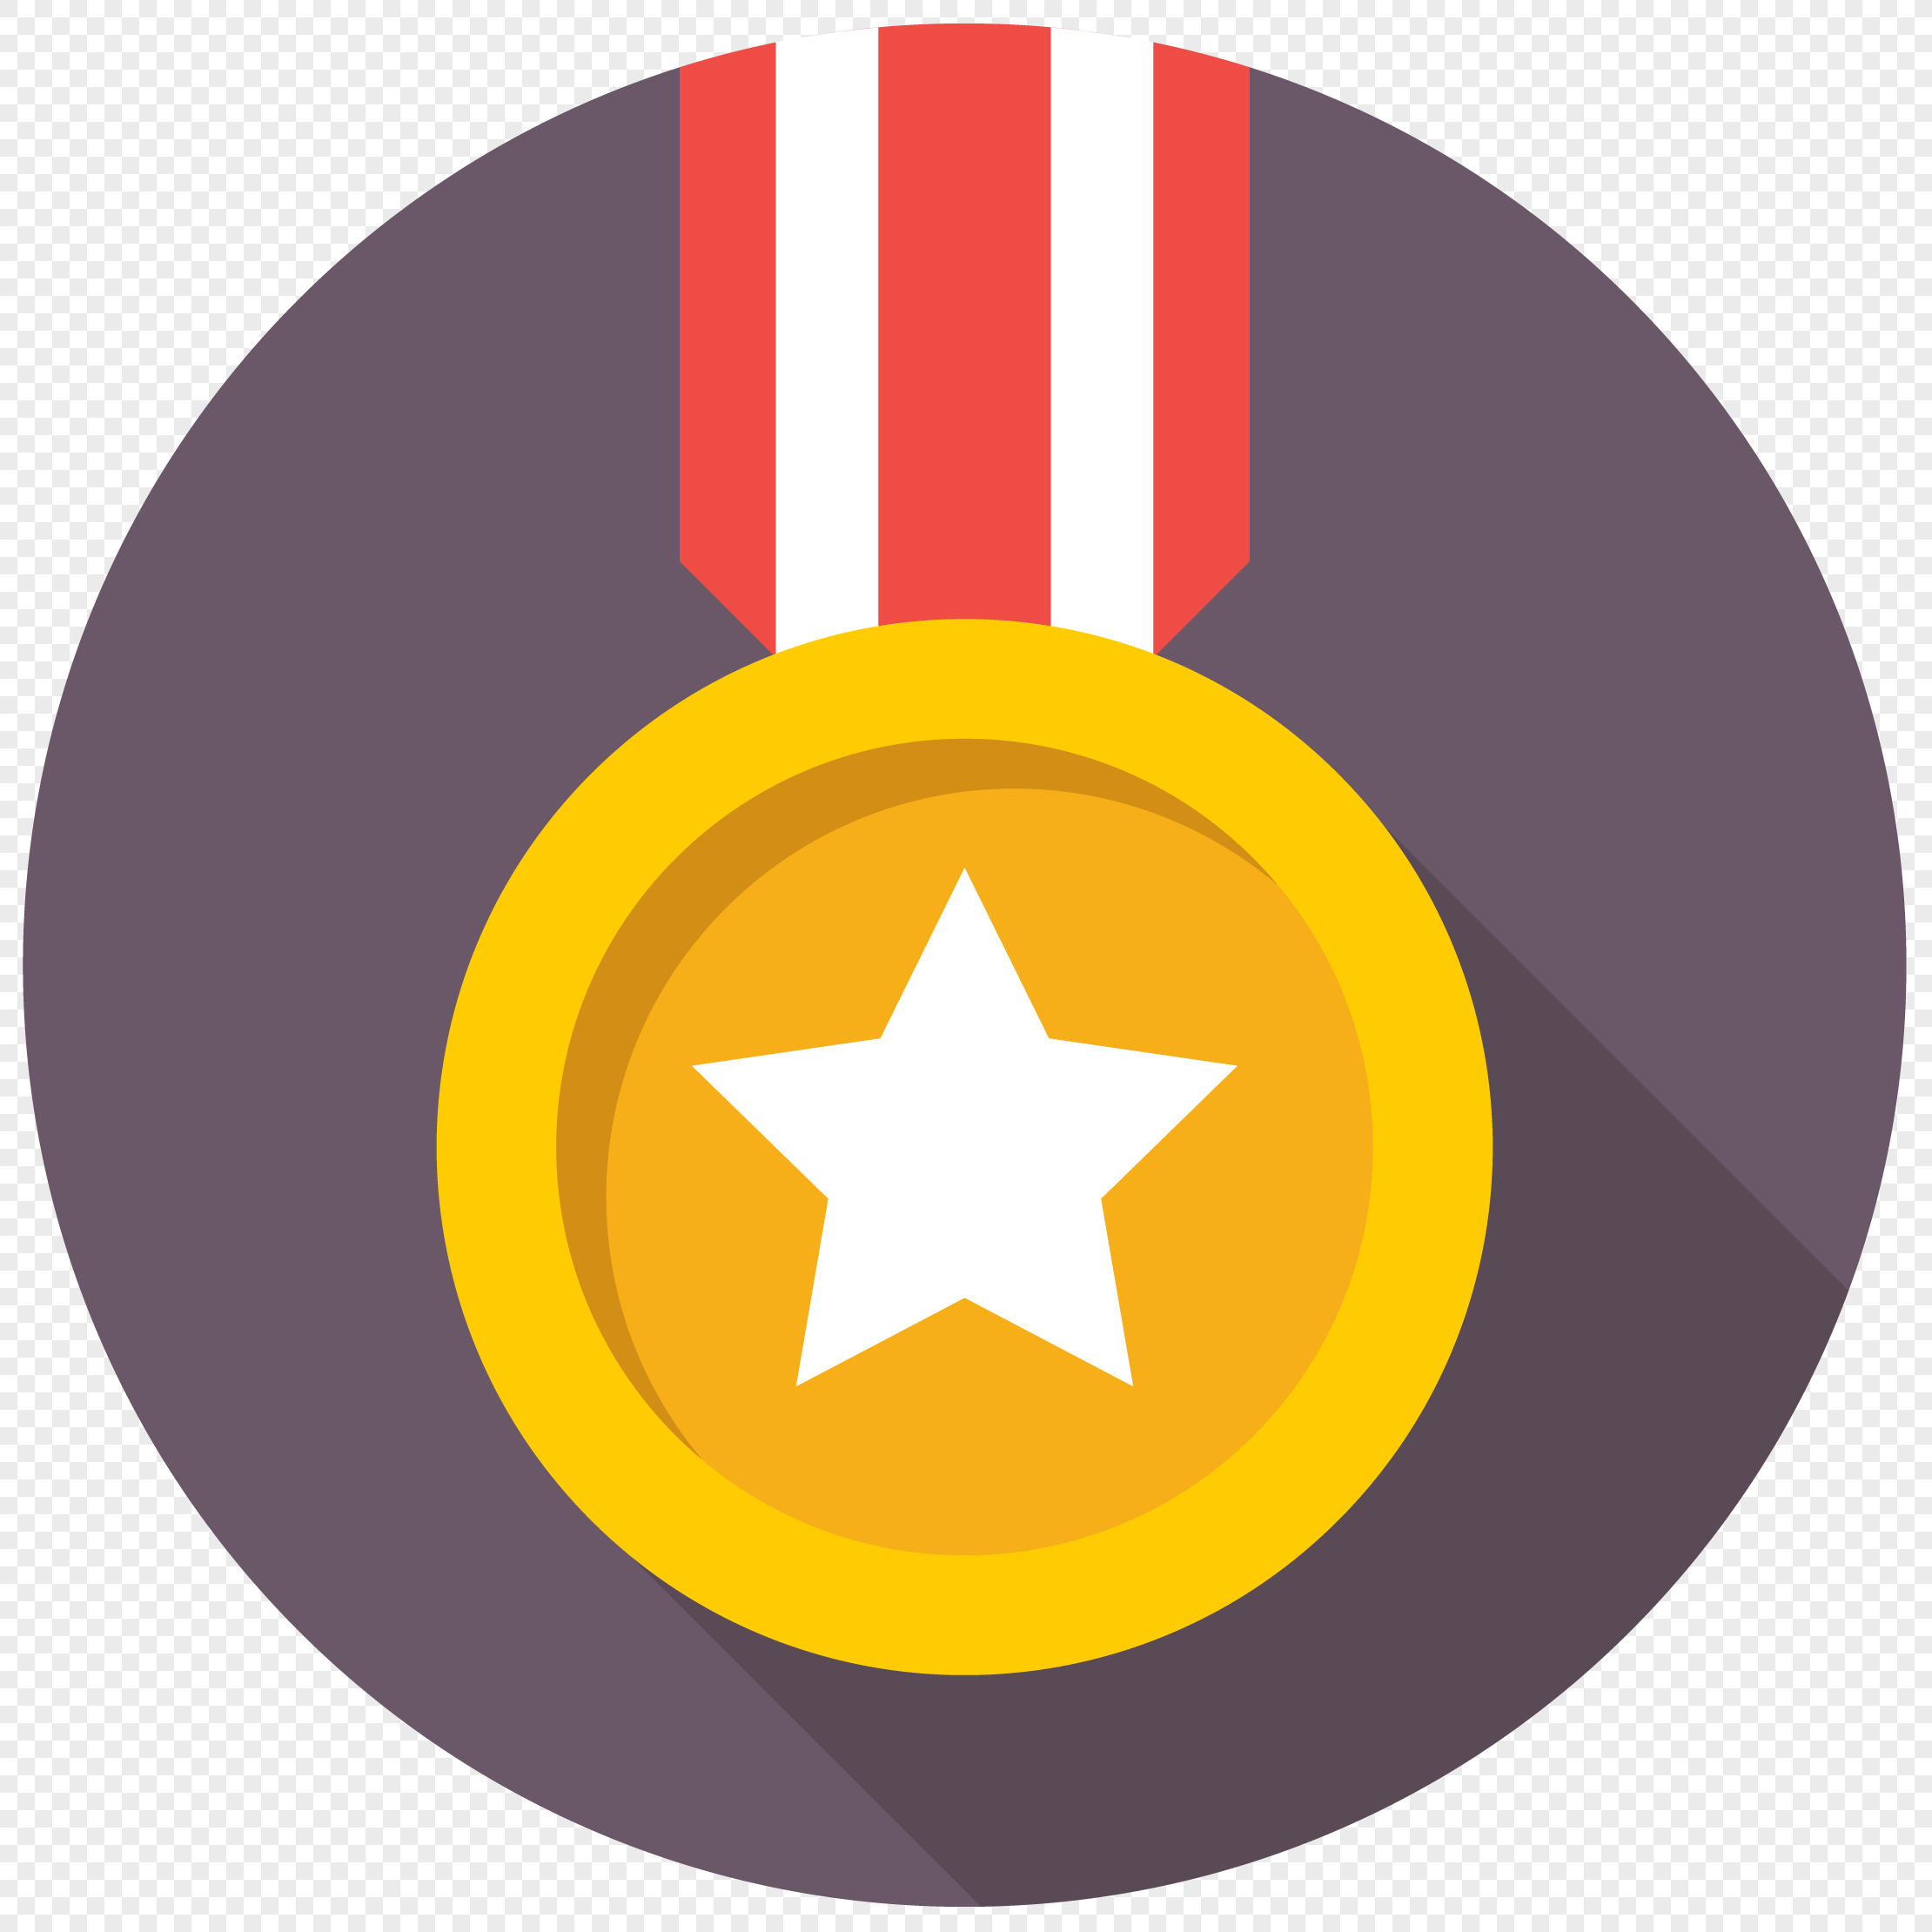 Gold medal icon png image_picture free download 400681791 ...